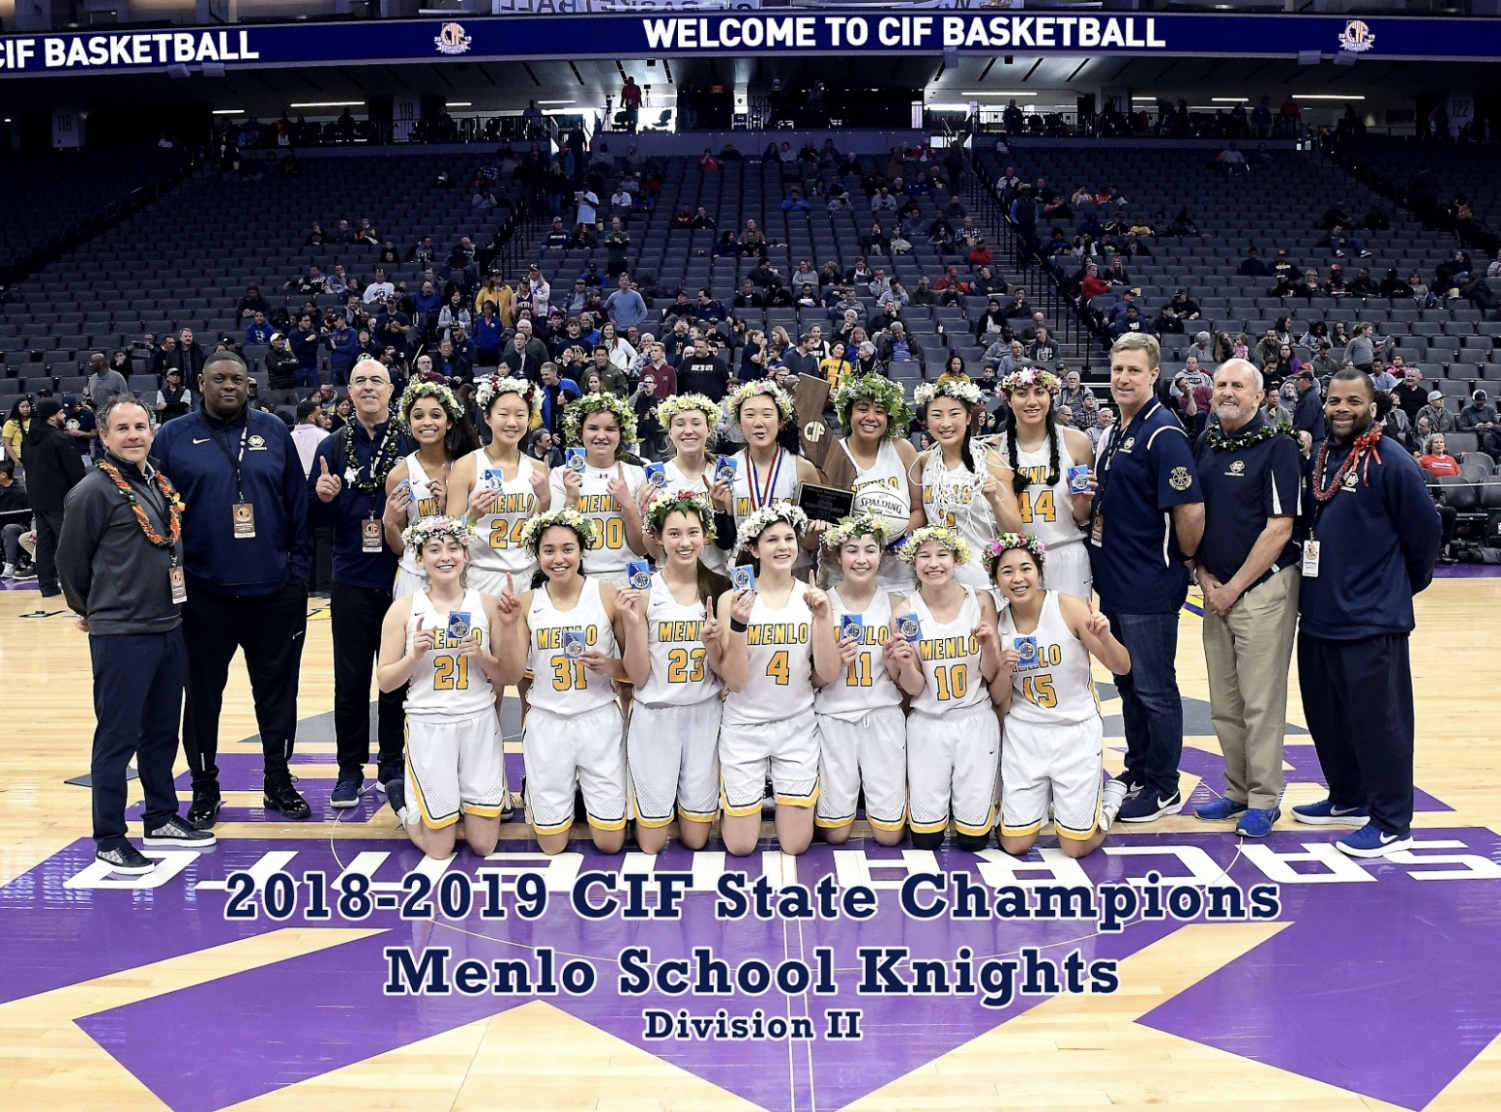 The varsity girls basketball team and coaches pose for a picture as the new Division II CIF State Champions. Photo courtesy of Danielle McNair via MaxPreps.